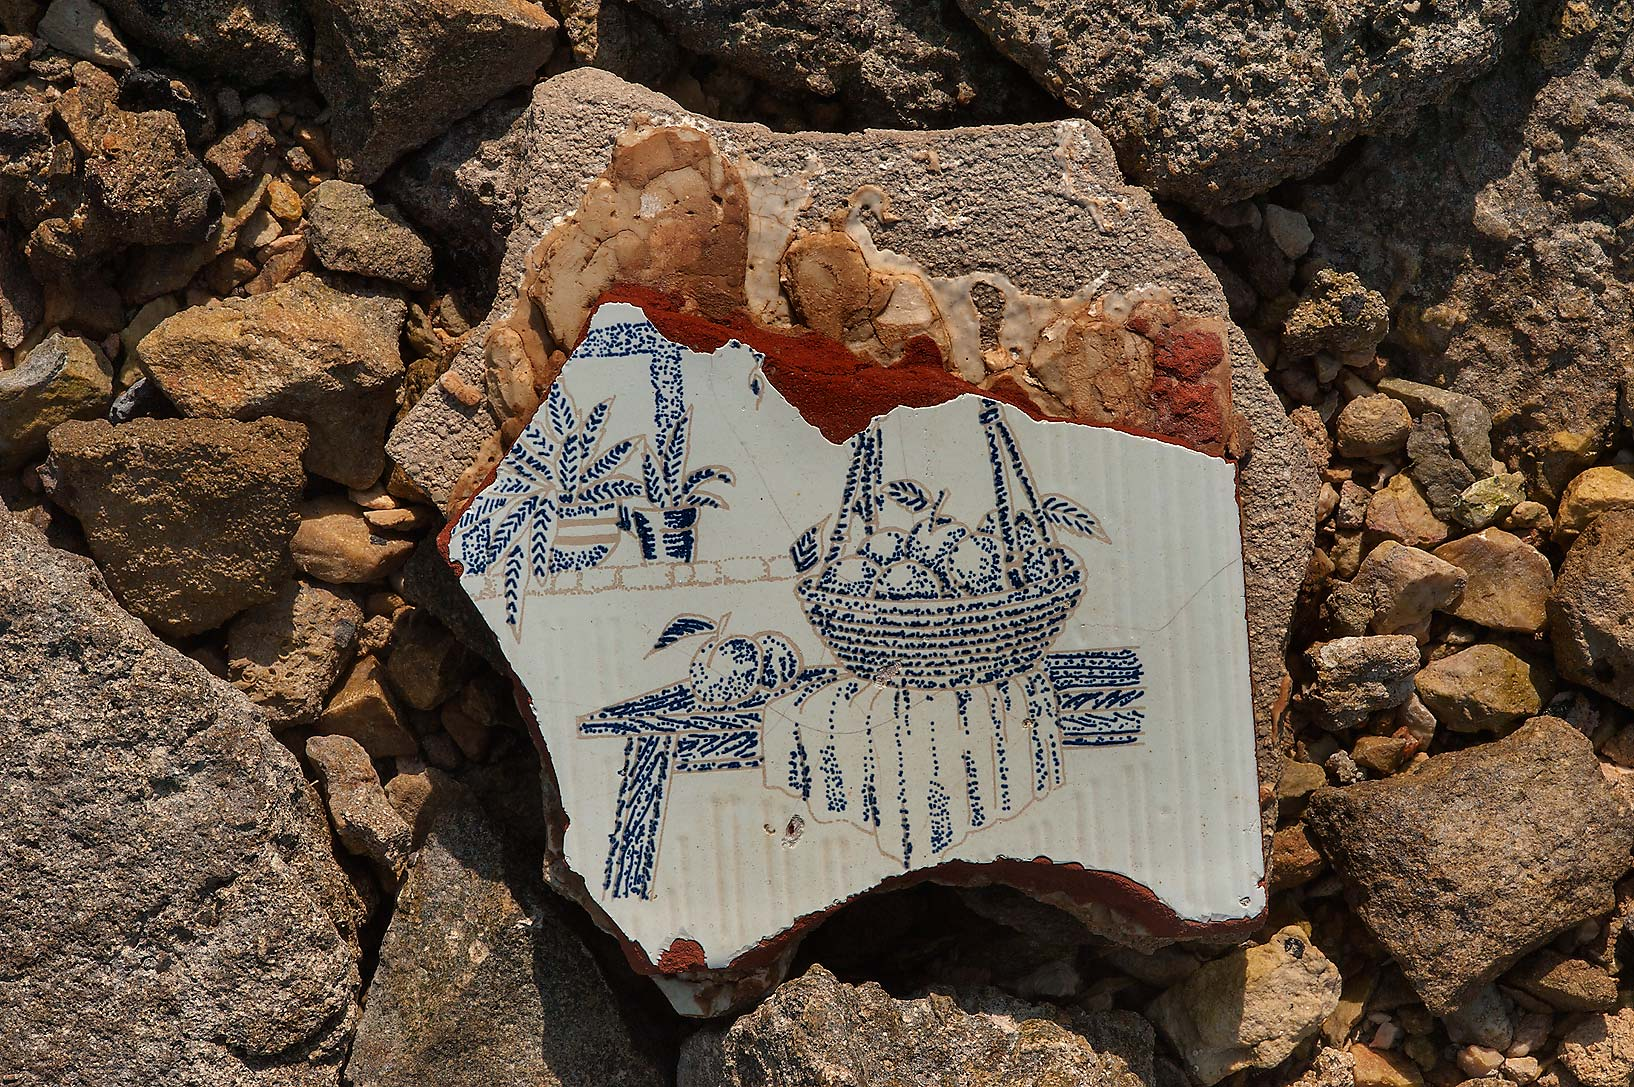 Remains of a ceramic tile on a beach in Ruwais. Qatar